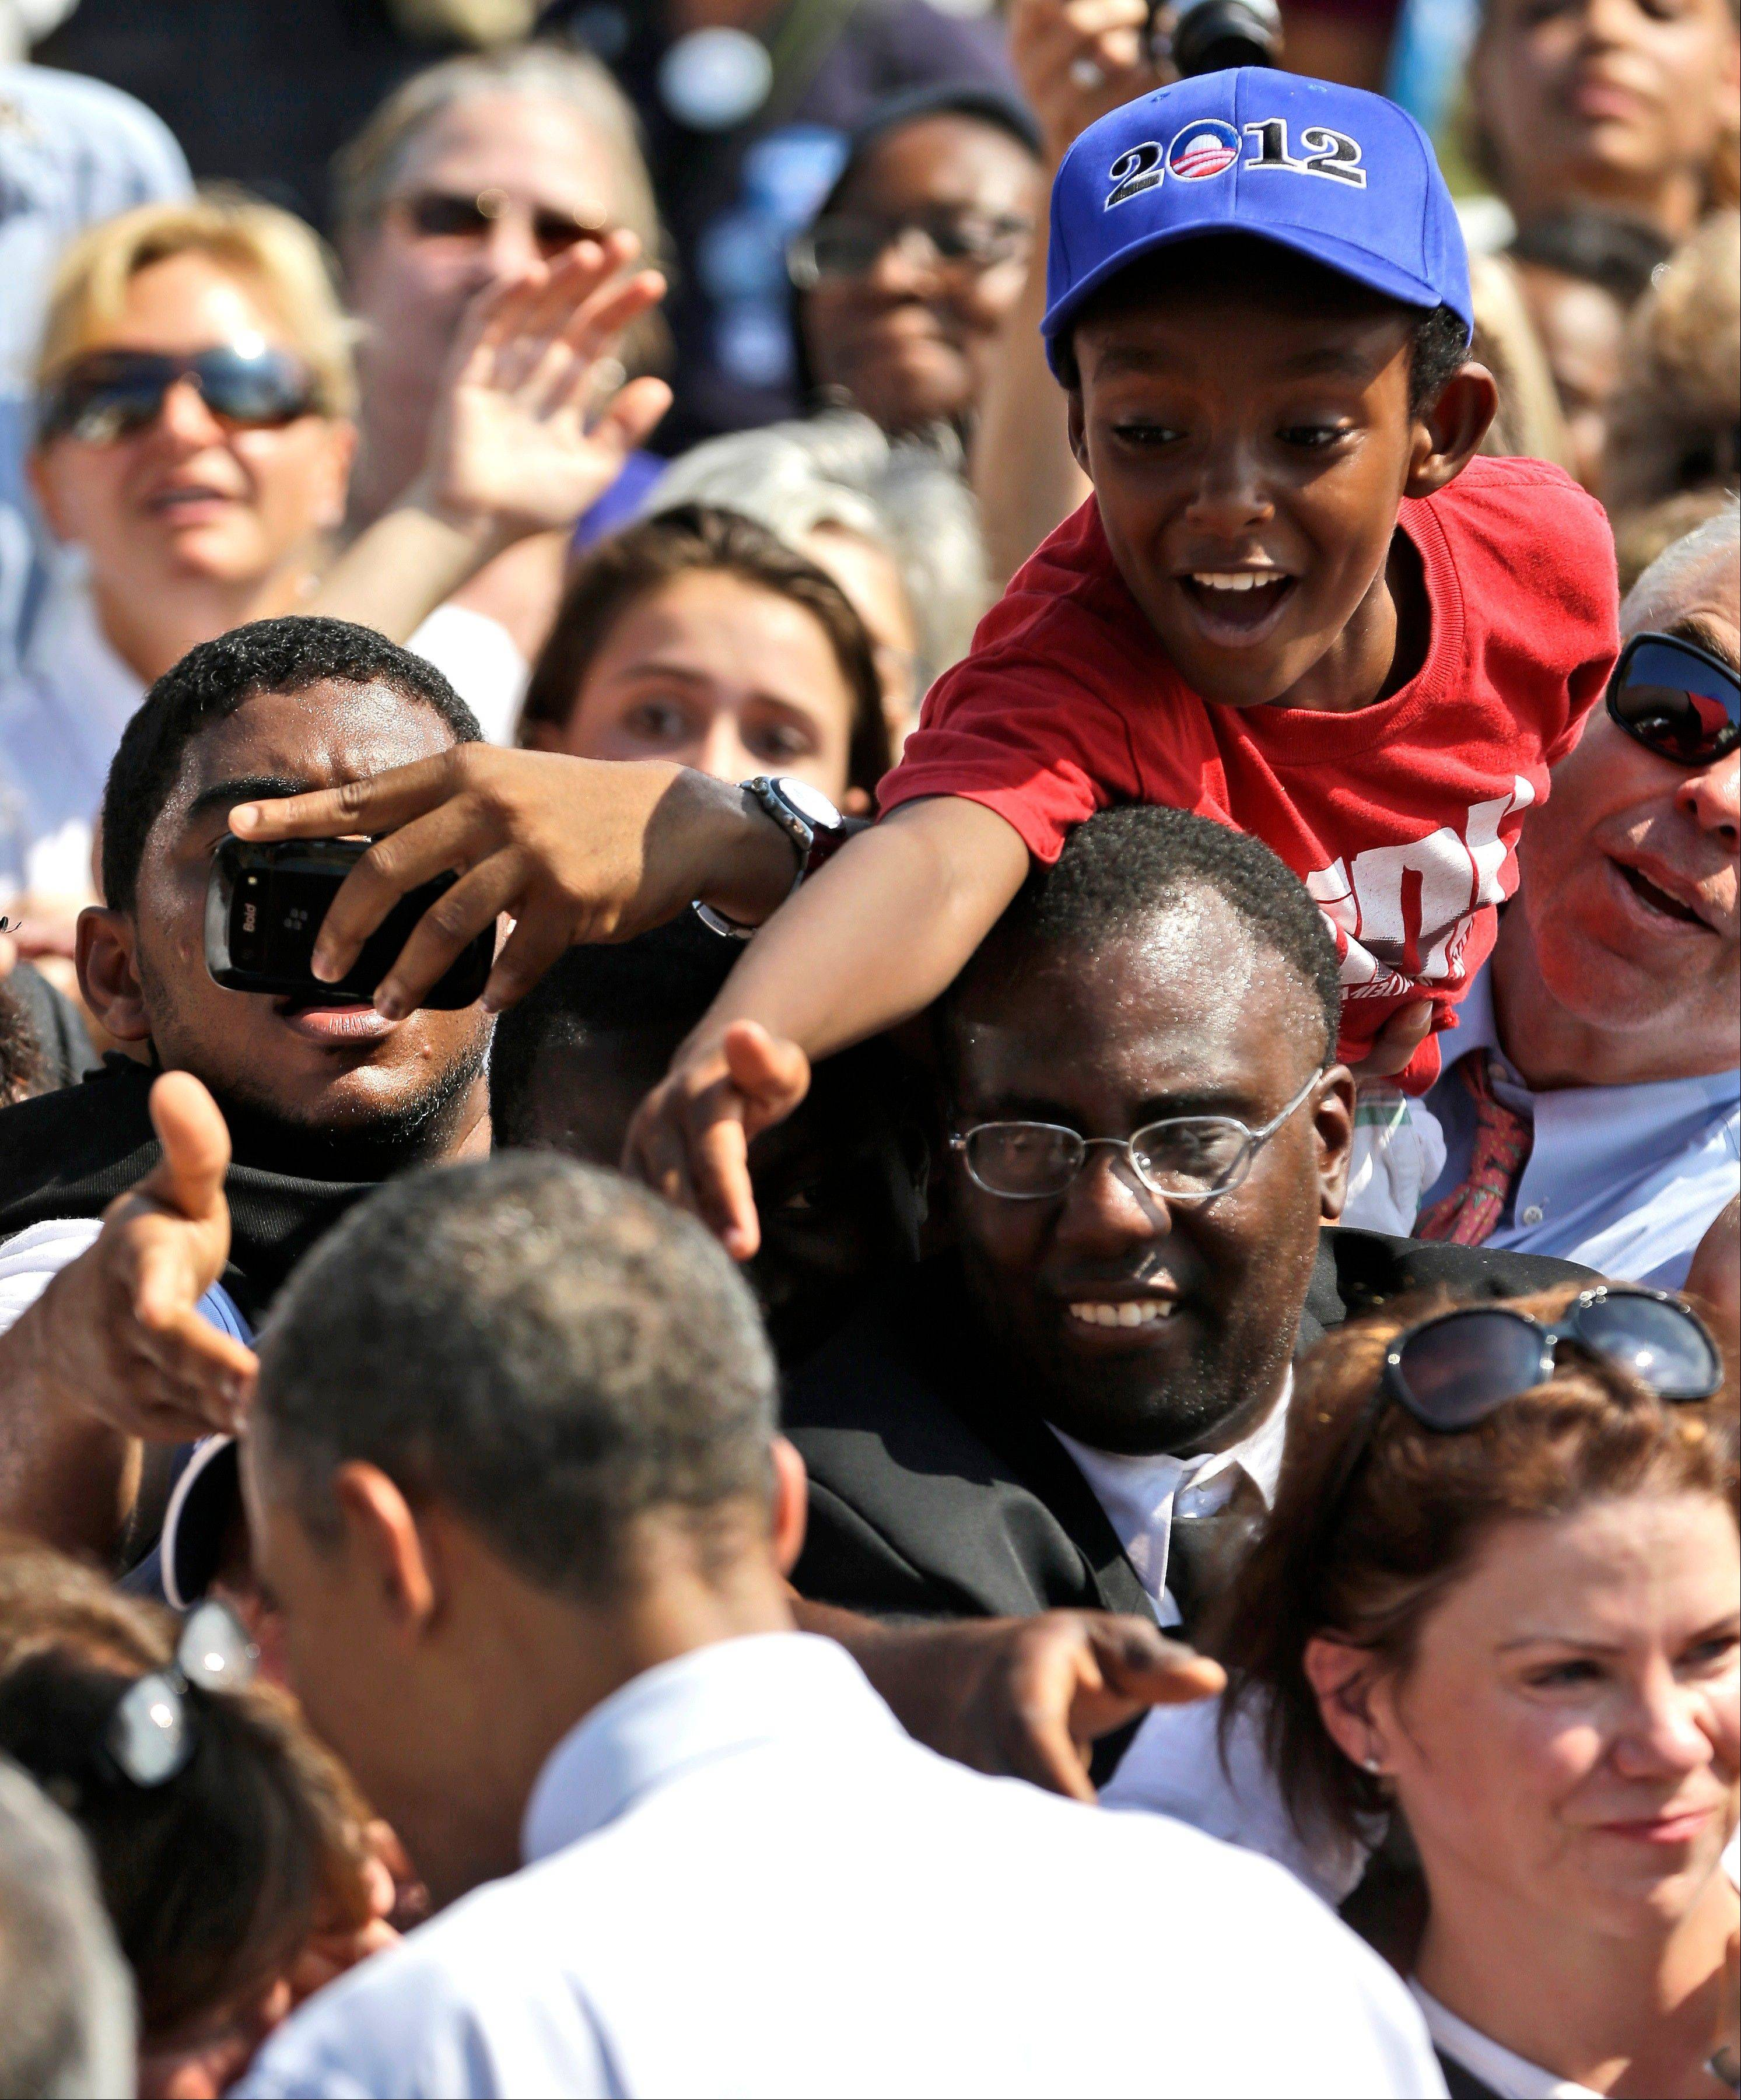 A young supporter reaches out in an attempt to greet President Barack Obama Friday during a campaign event at Strawbery Banke Museum in Portsmouth, N.H.